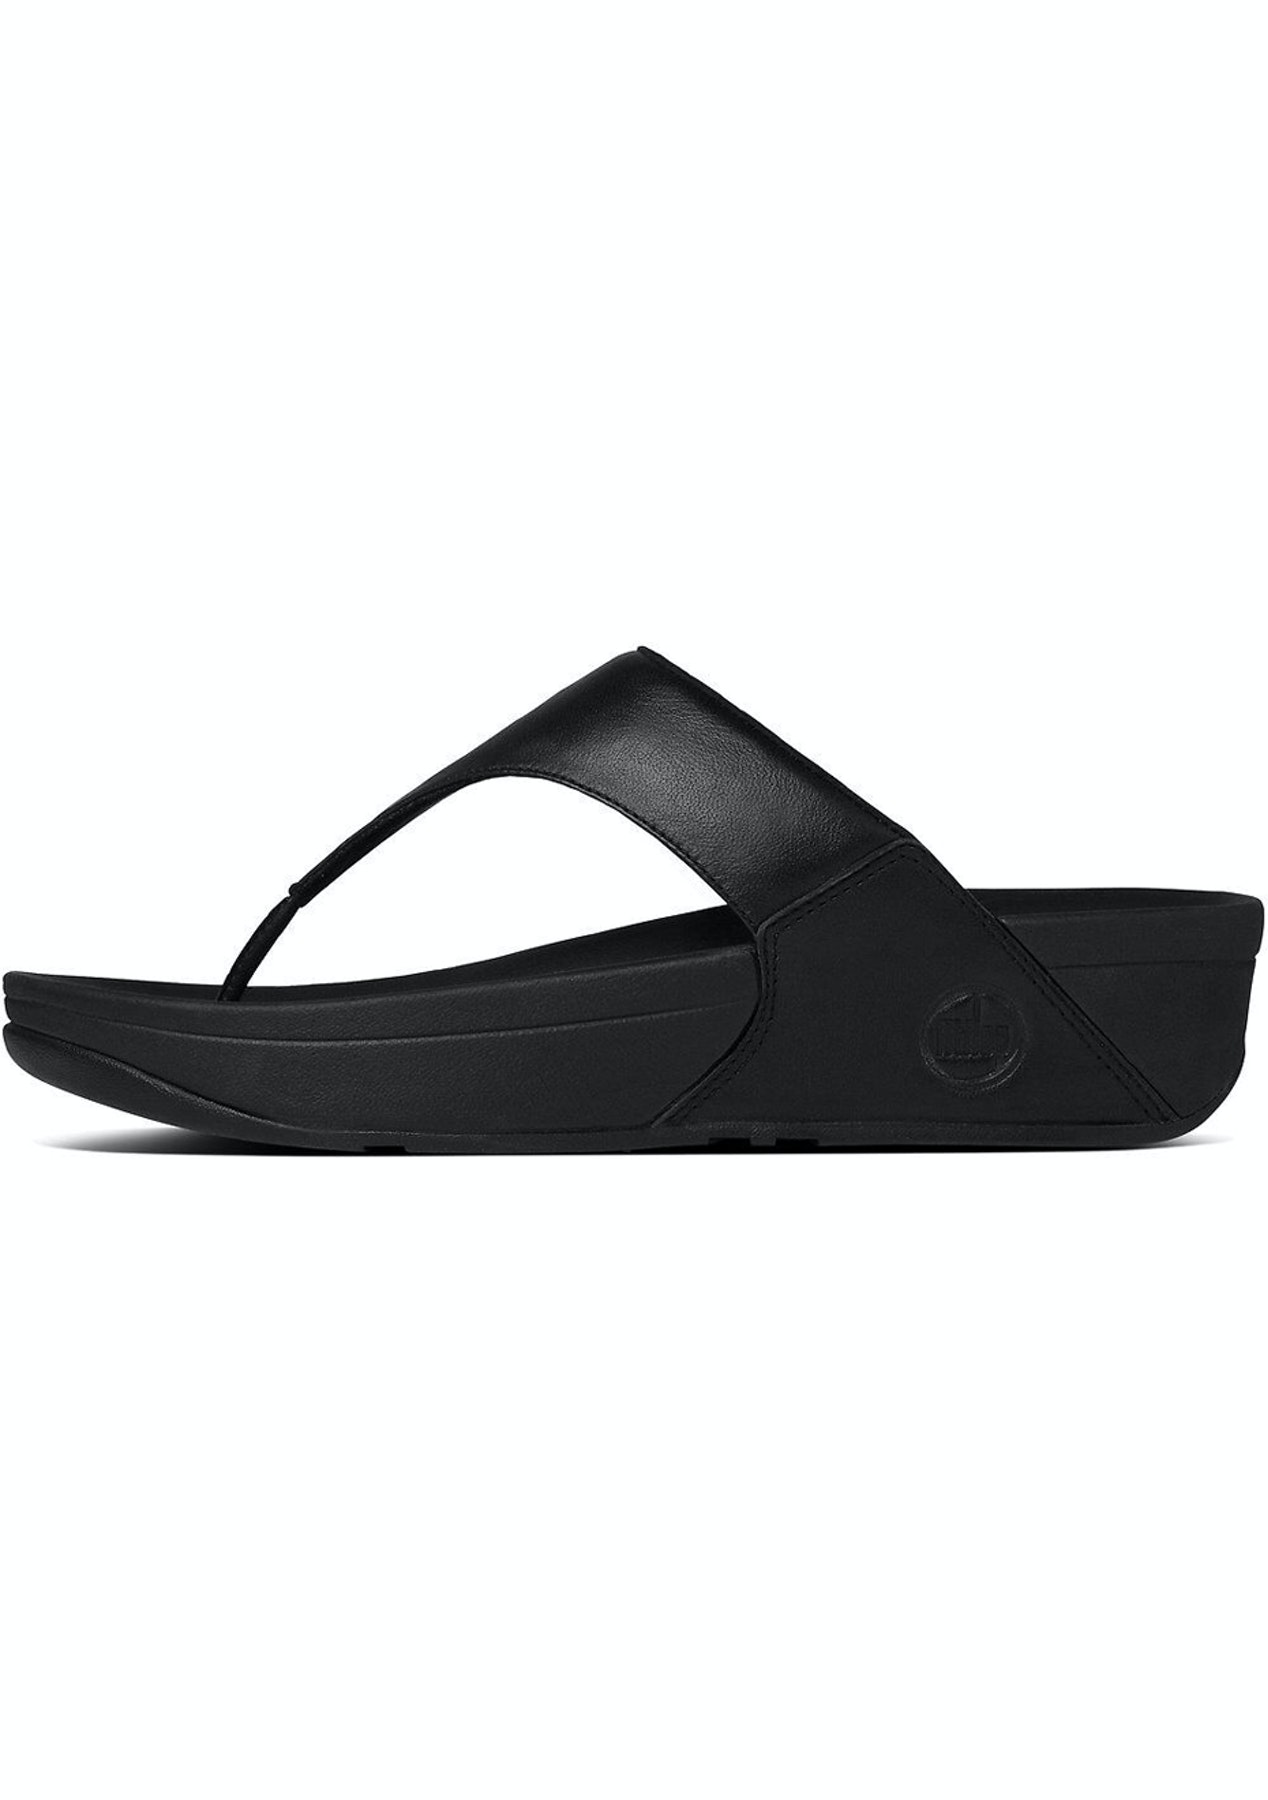 6da4f8c5ce5455 Fit Flop - Lulu Leather Toepost -Black - Fit Flop   More - Onceit